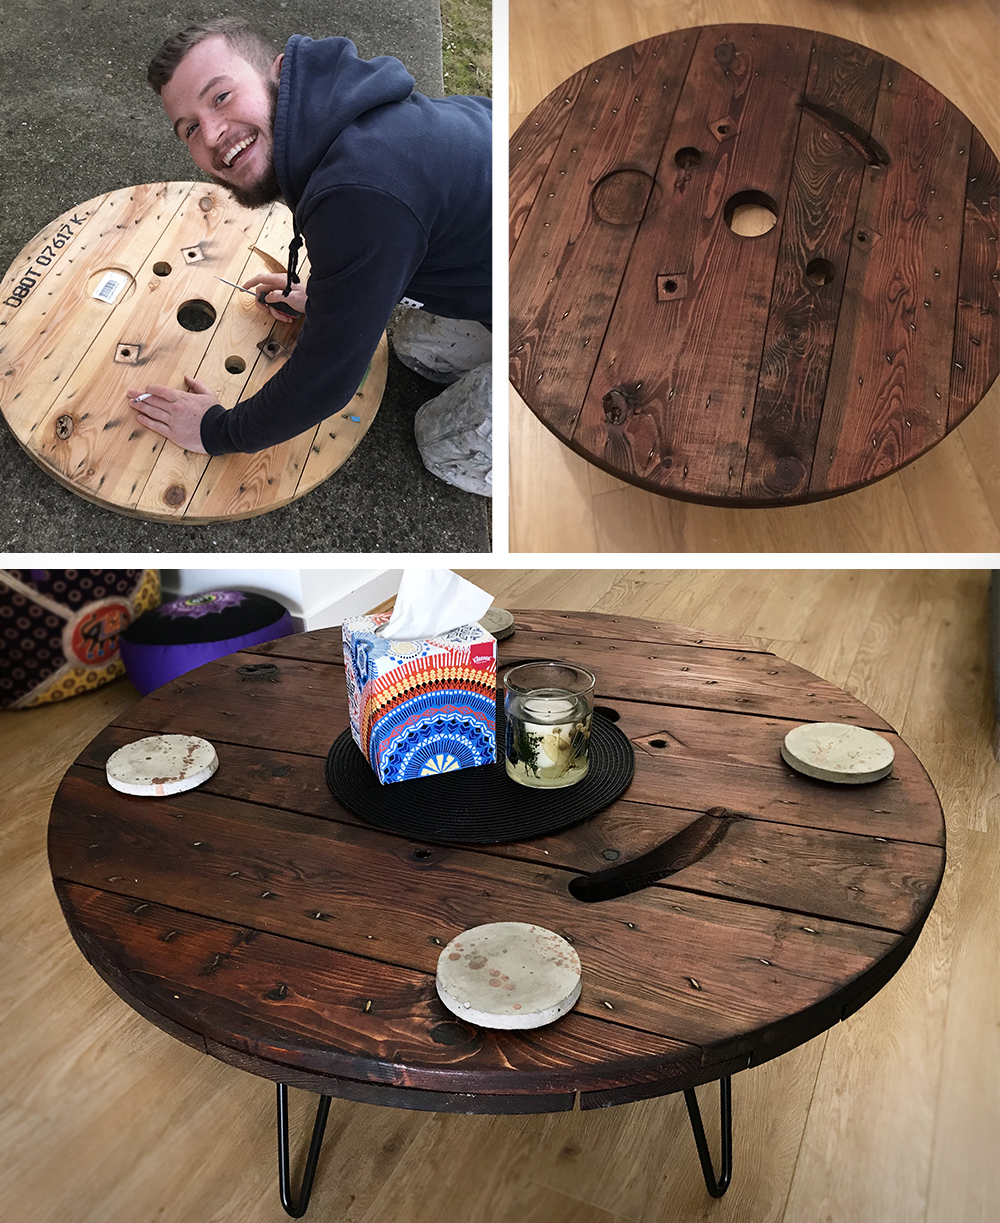 DIY: Upcycled cable drum coffee table